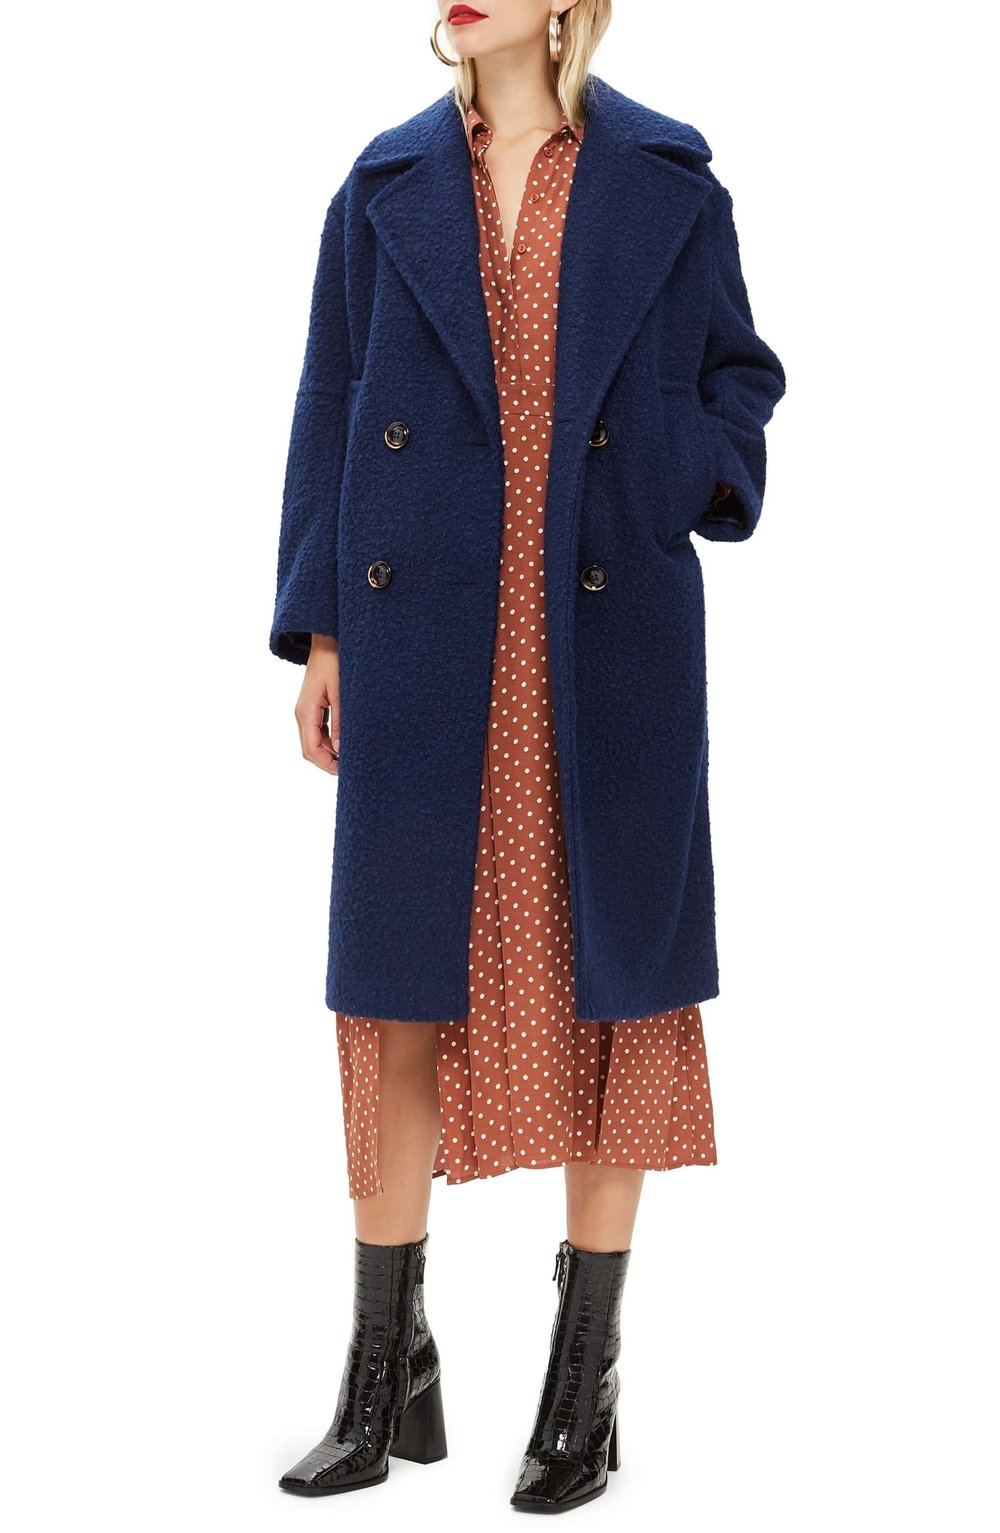 Bouclé Button Front Coat - $150 | Vegan Coat